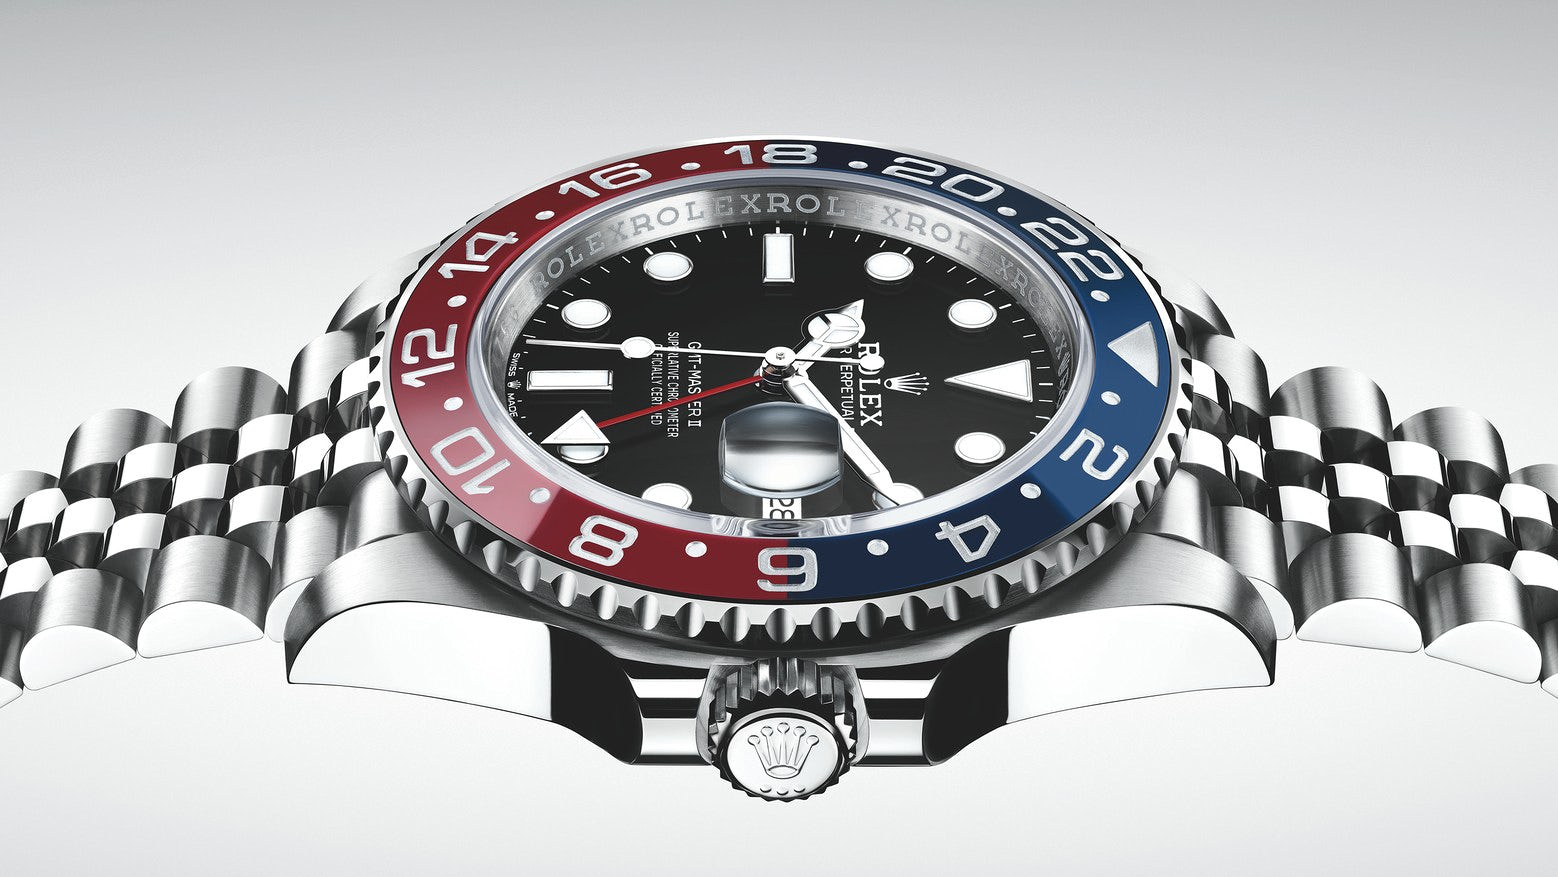 be959889951 The new Rolex Oyster Perpetual GMT-Master II watches are destined for holy  grail status